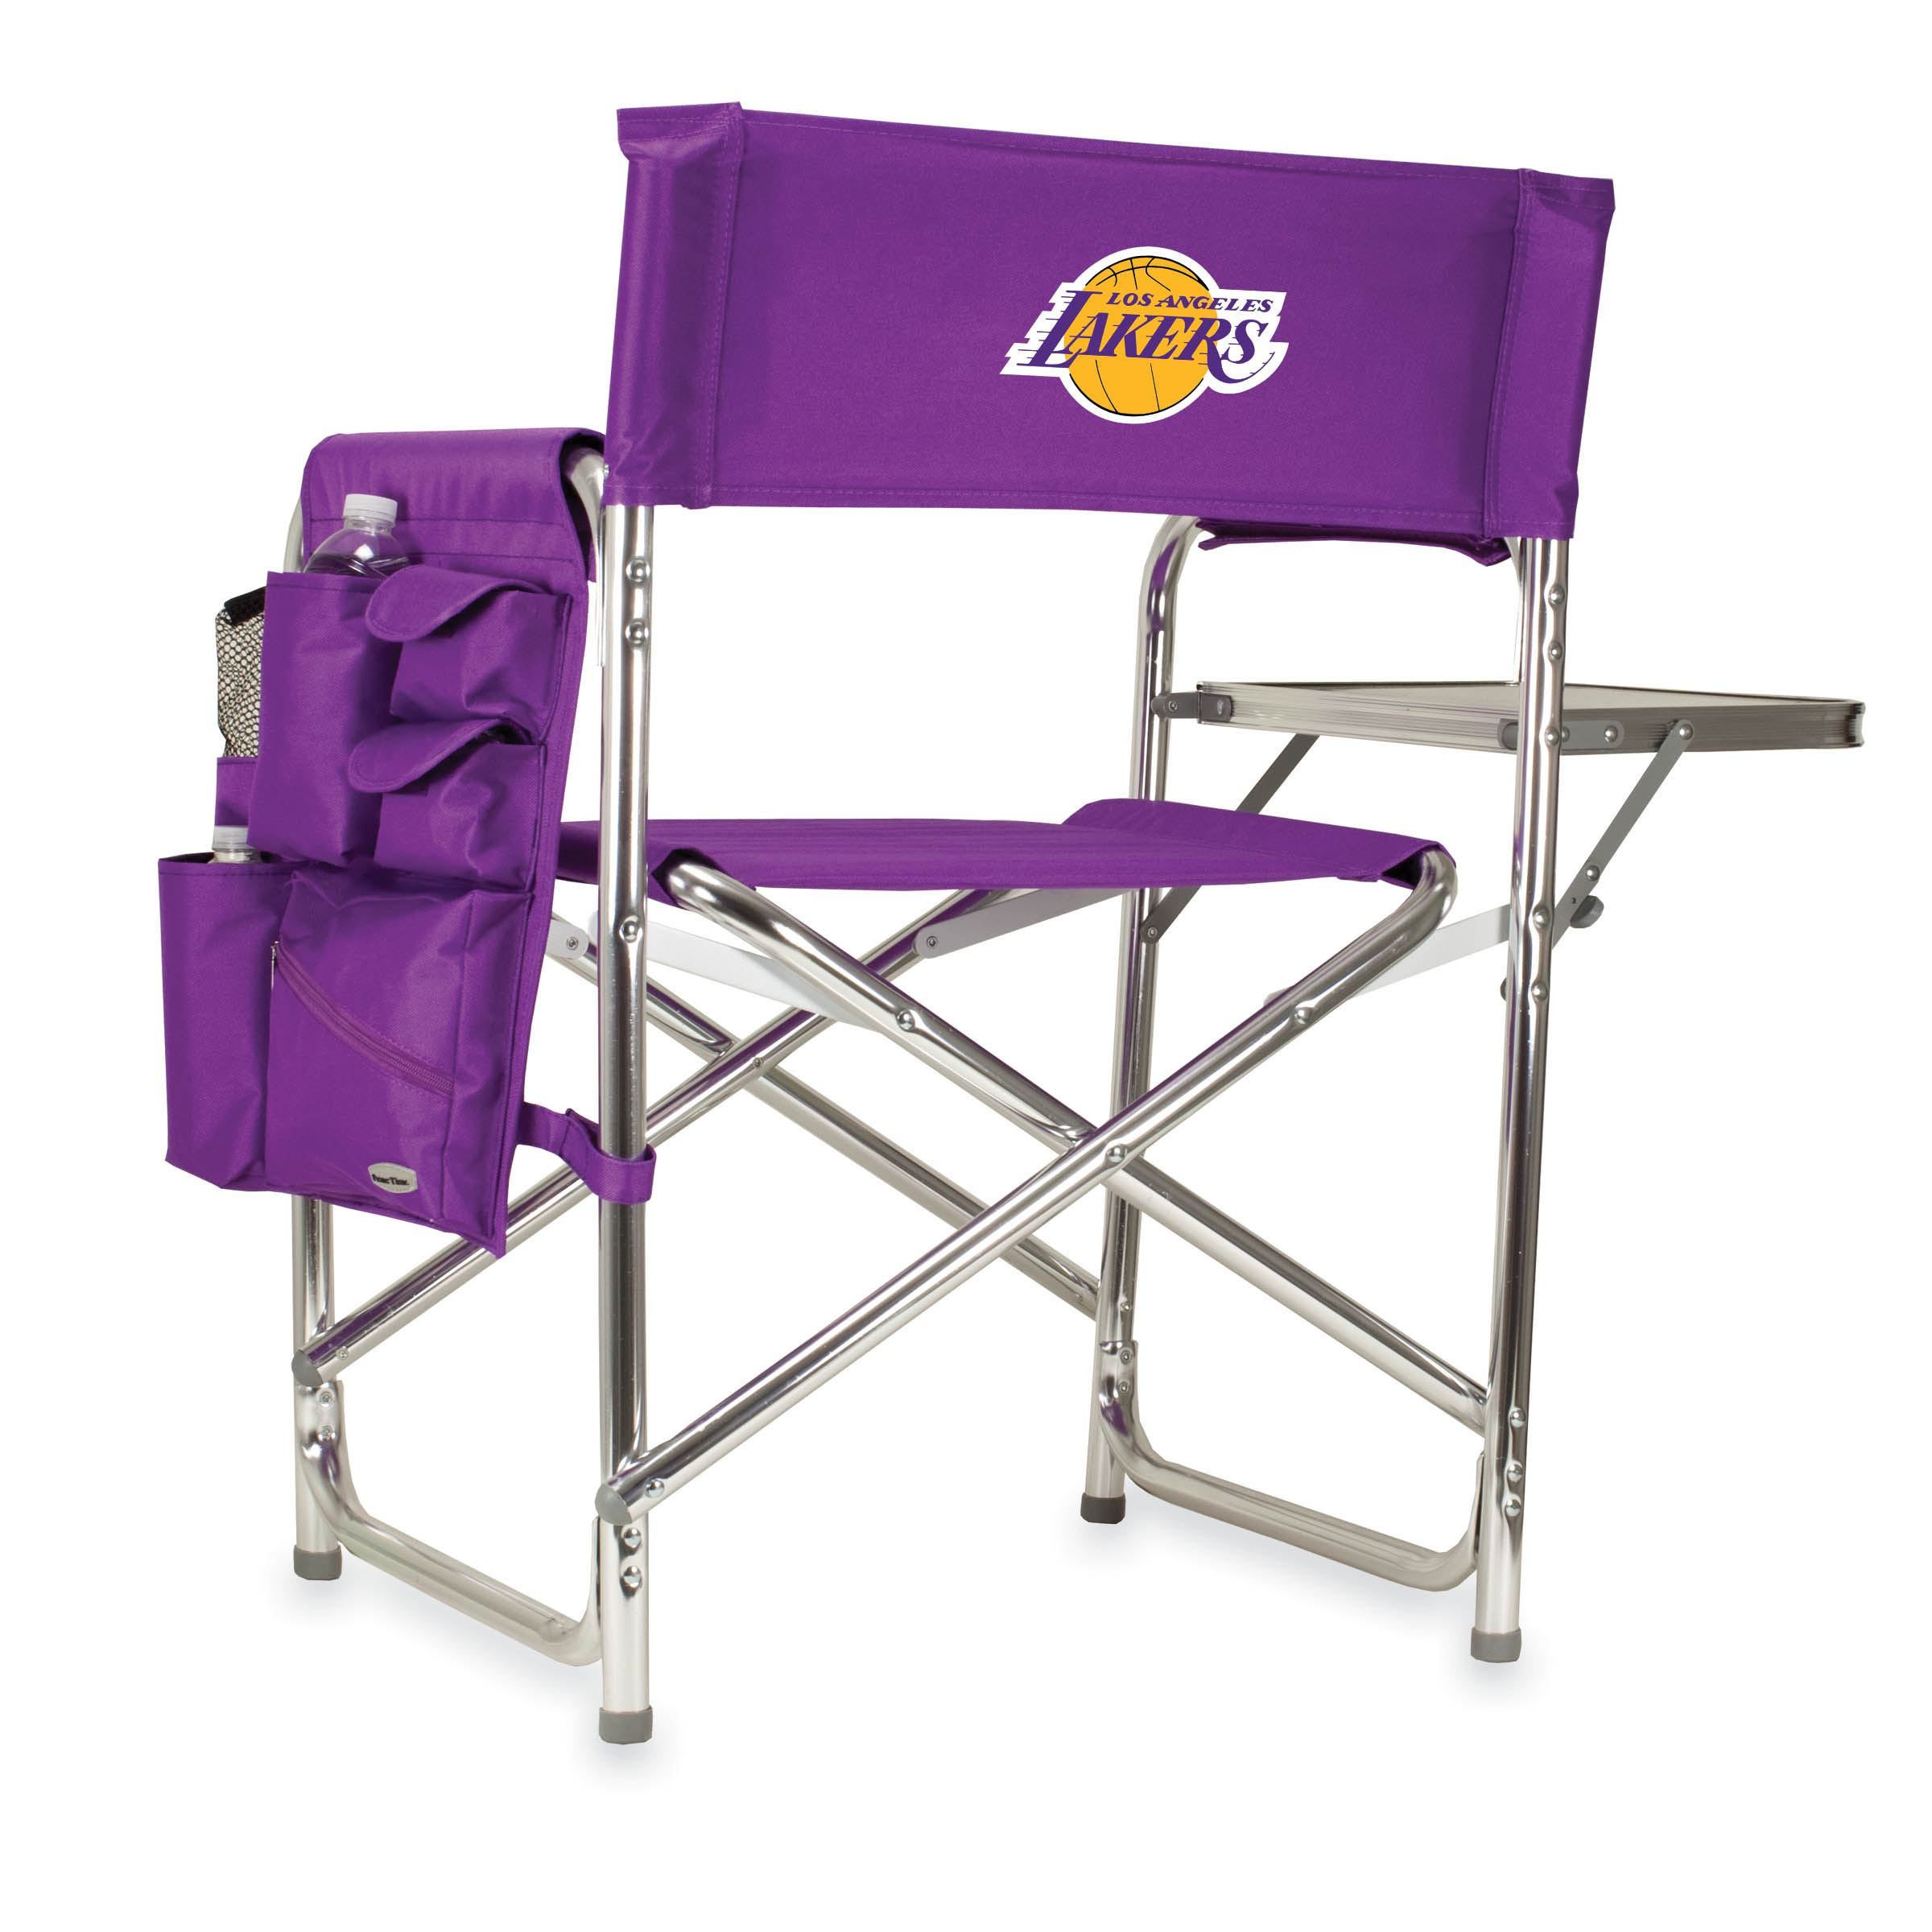 Picnic Time Nba Sports Chair Los Angeles Lakers